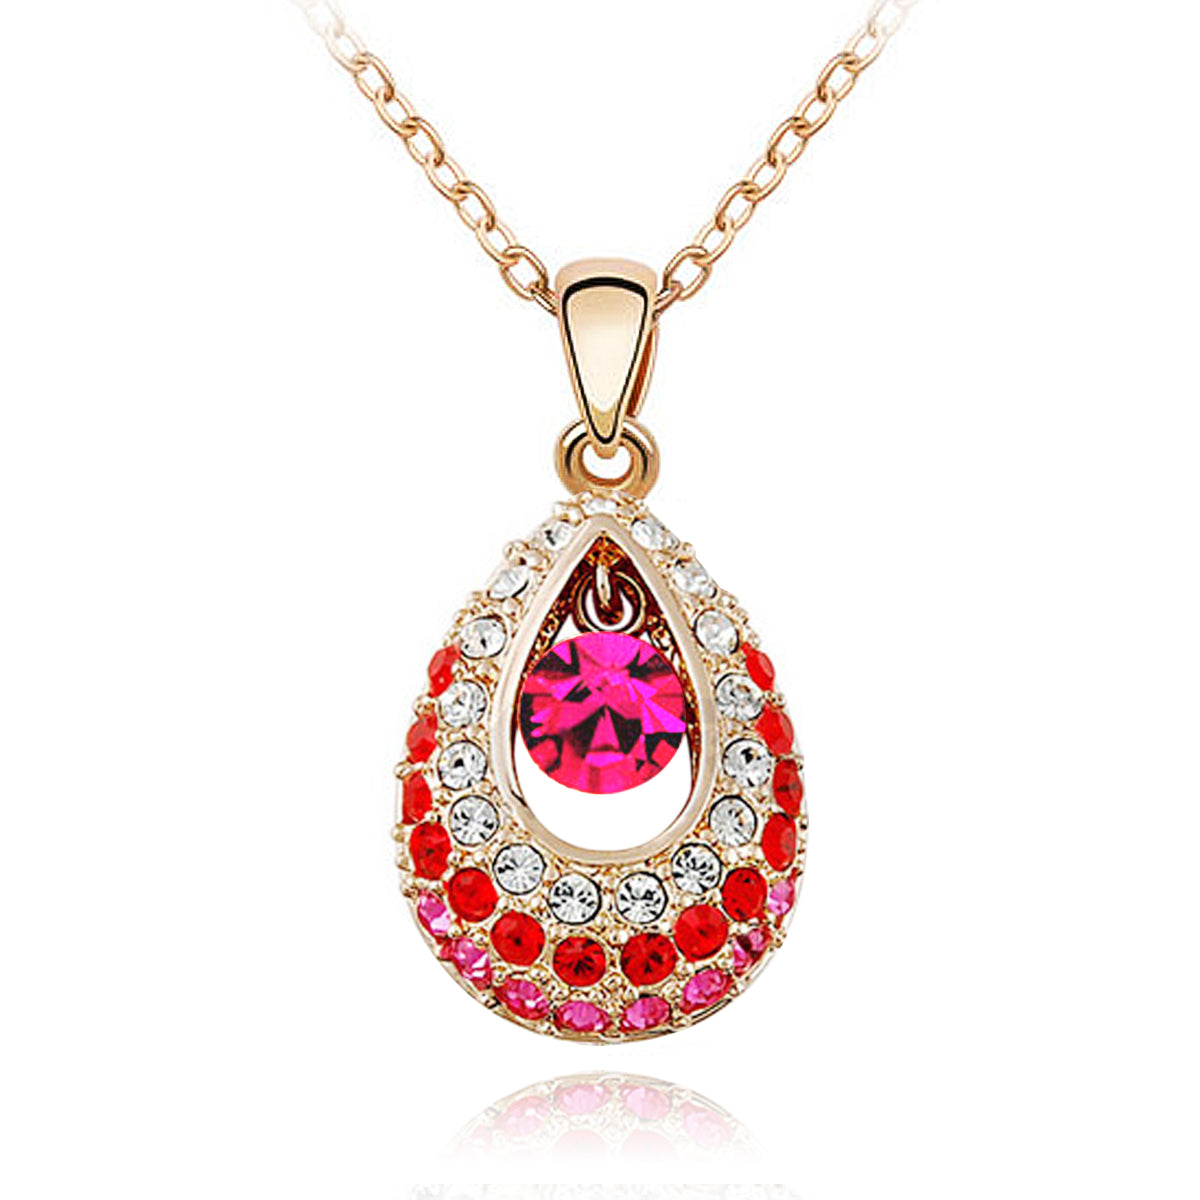 Wrapables Swarovski Elements Angel Teardrop Pendant Necklace